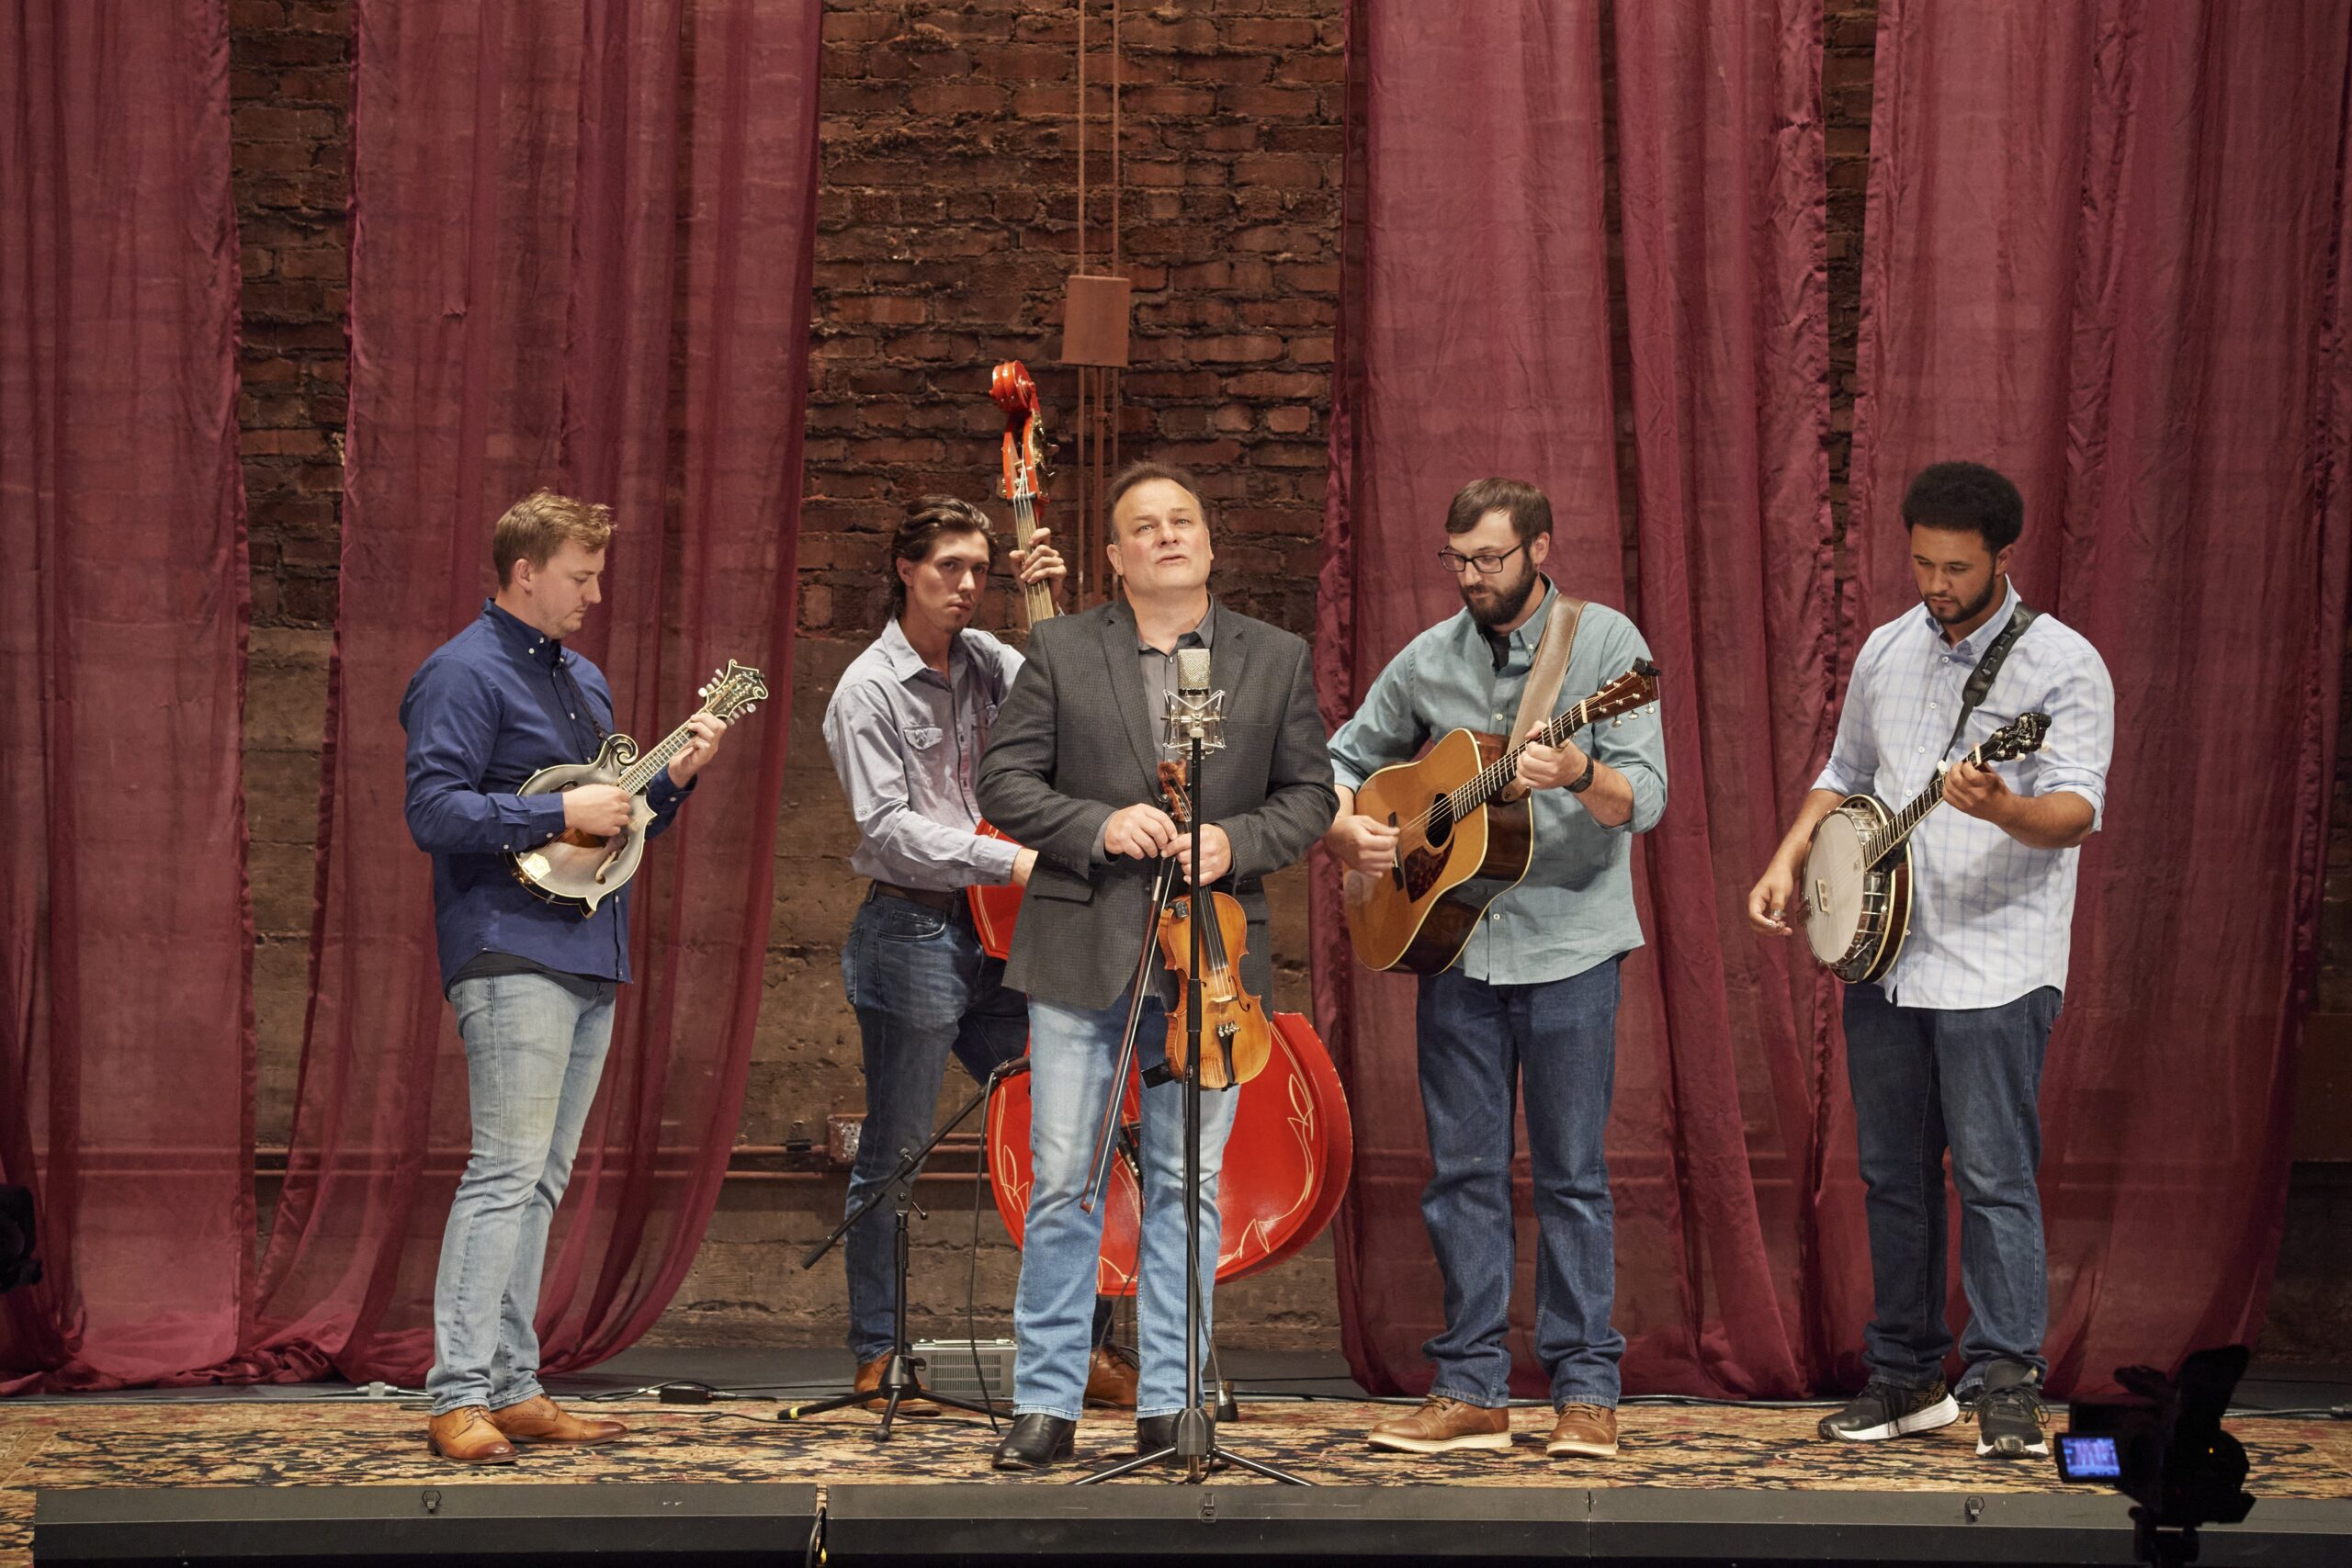 photo by David Johnson at The Lincoln Theater in Marion, VA